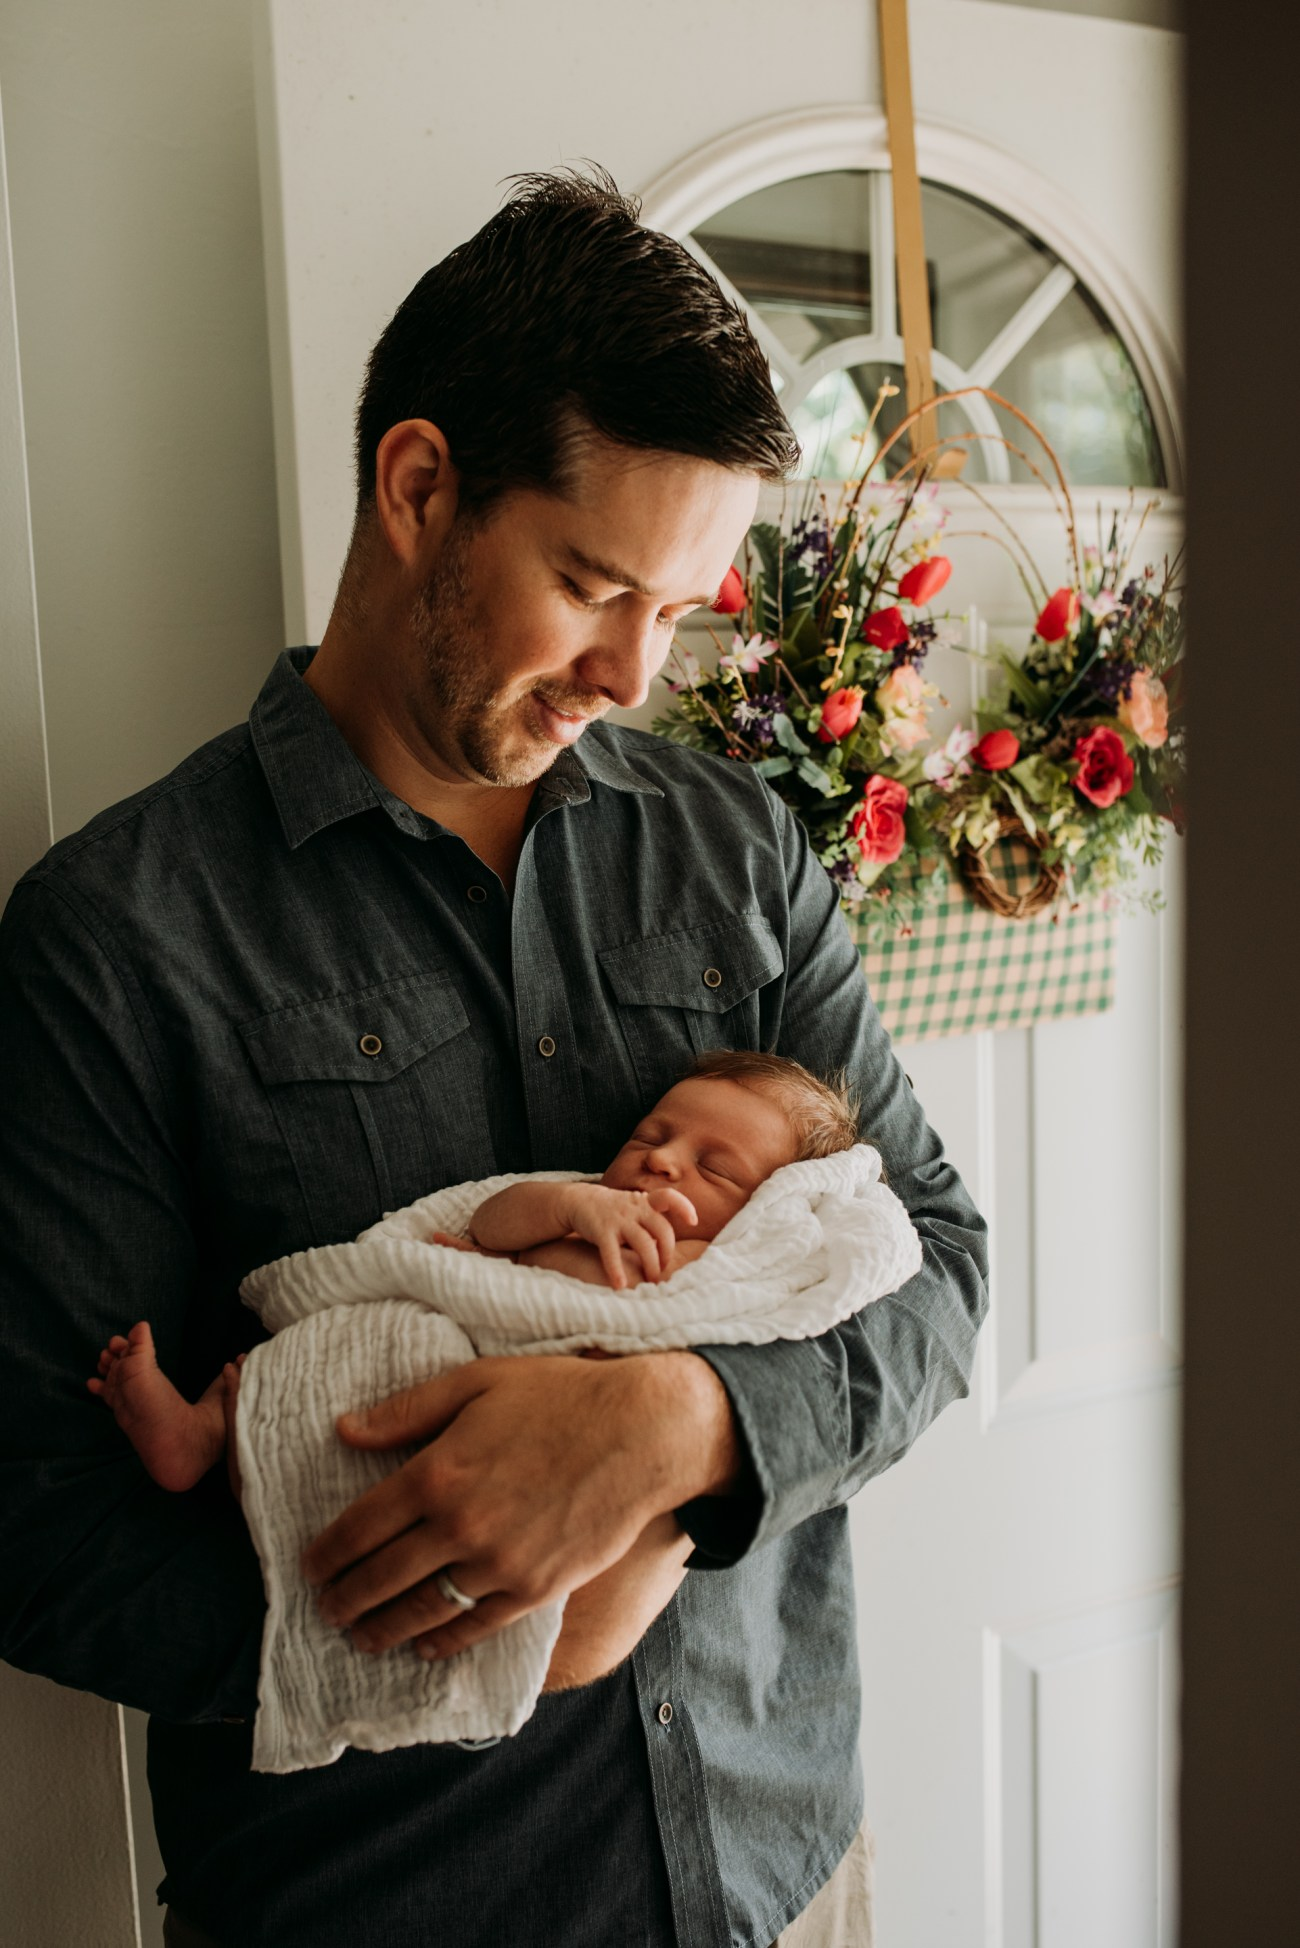 CamilleCamachoPhotography_Virginia_Lifestyle_Newborn-24